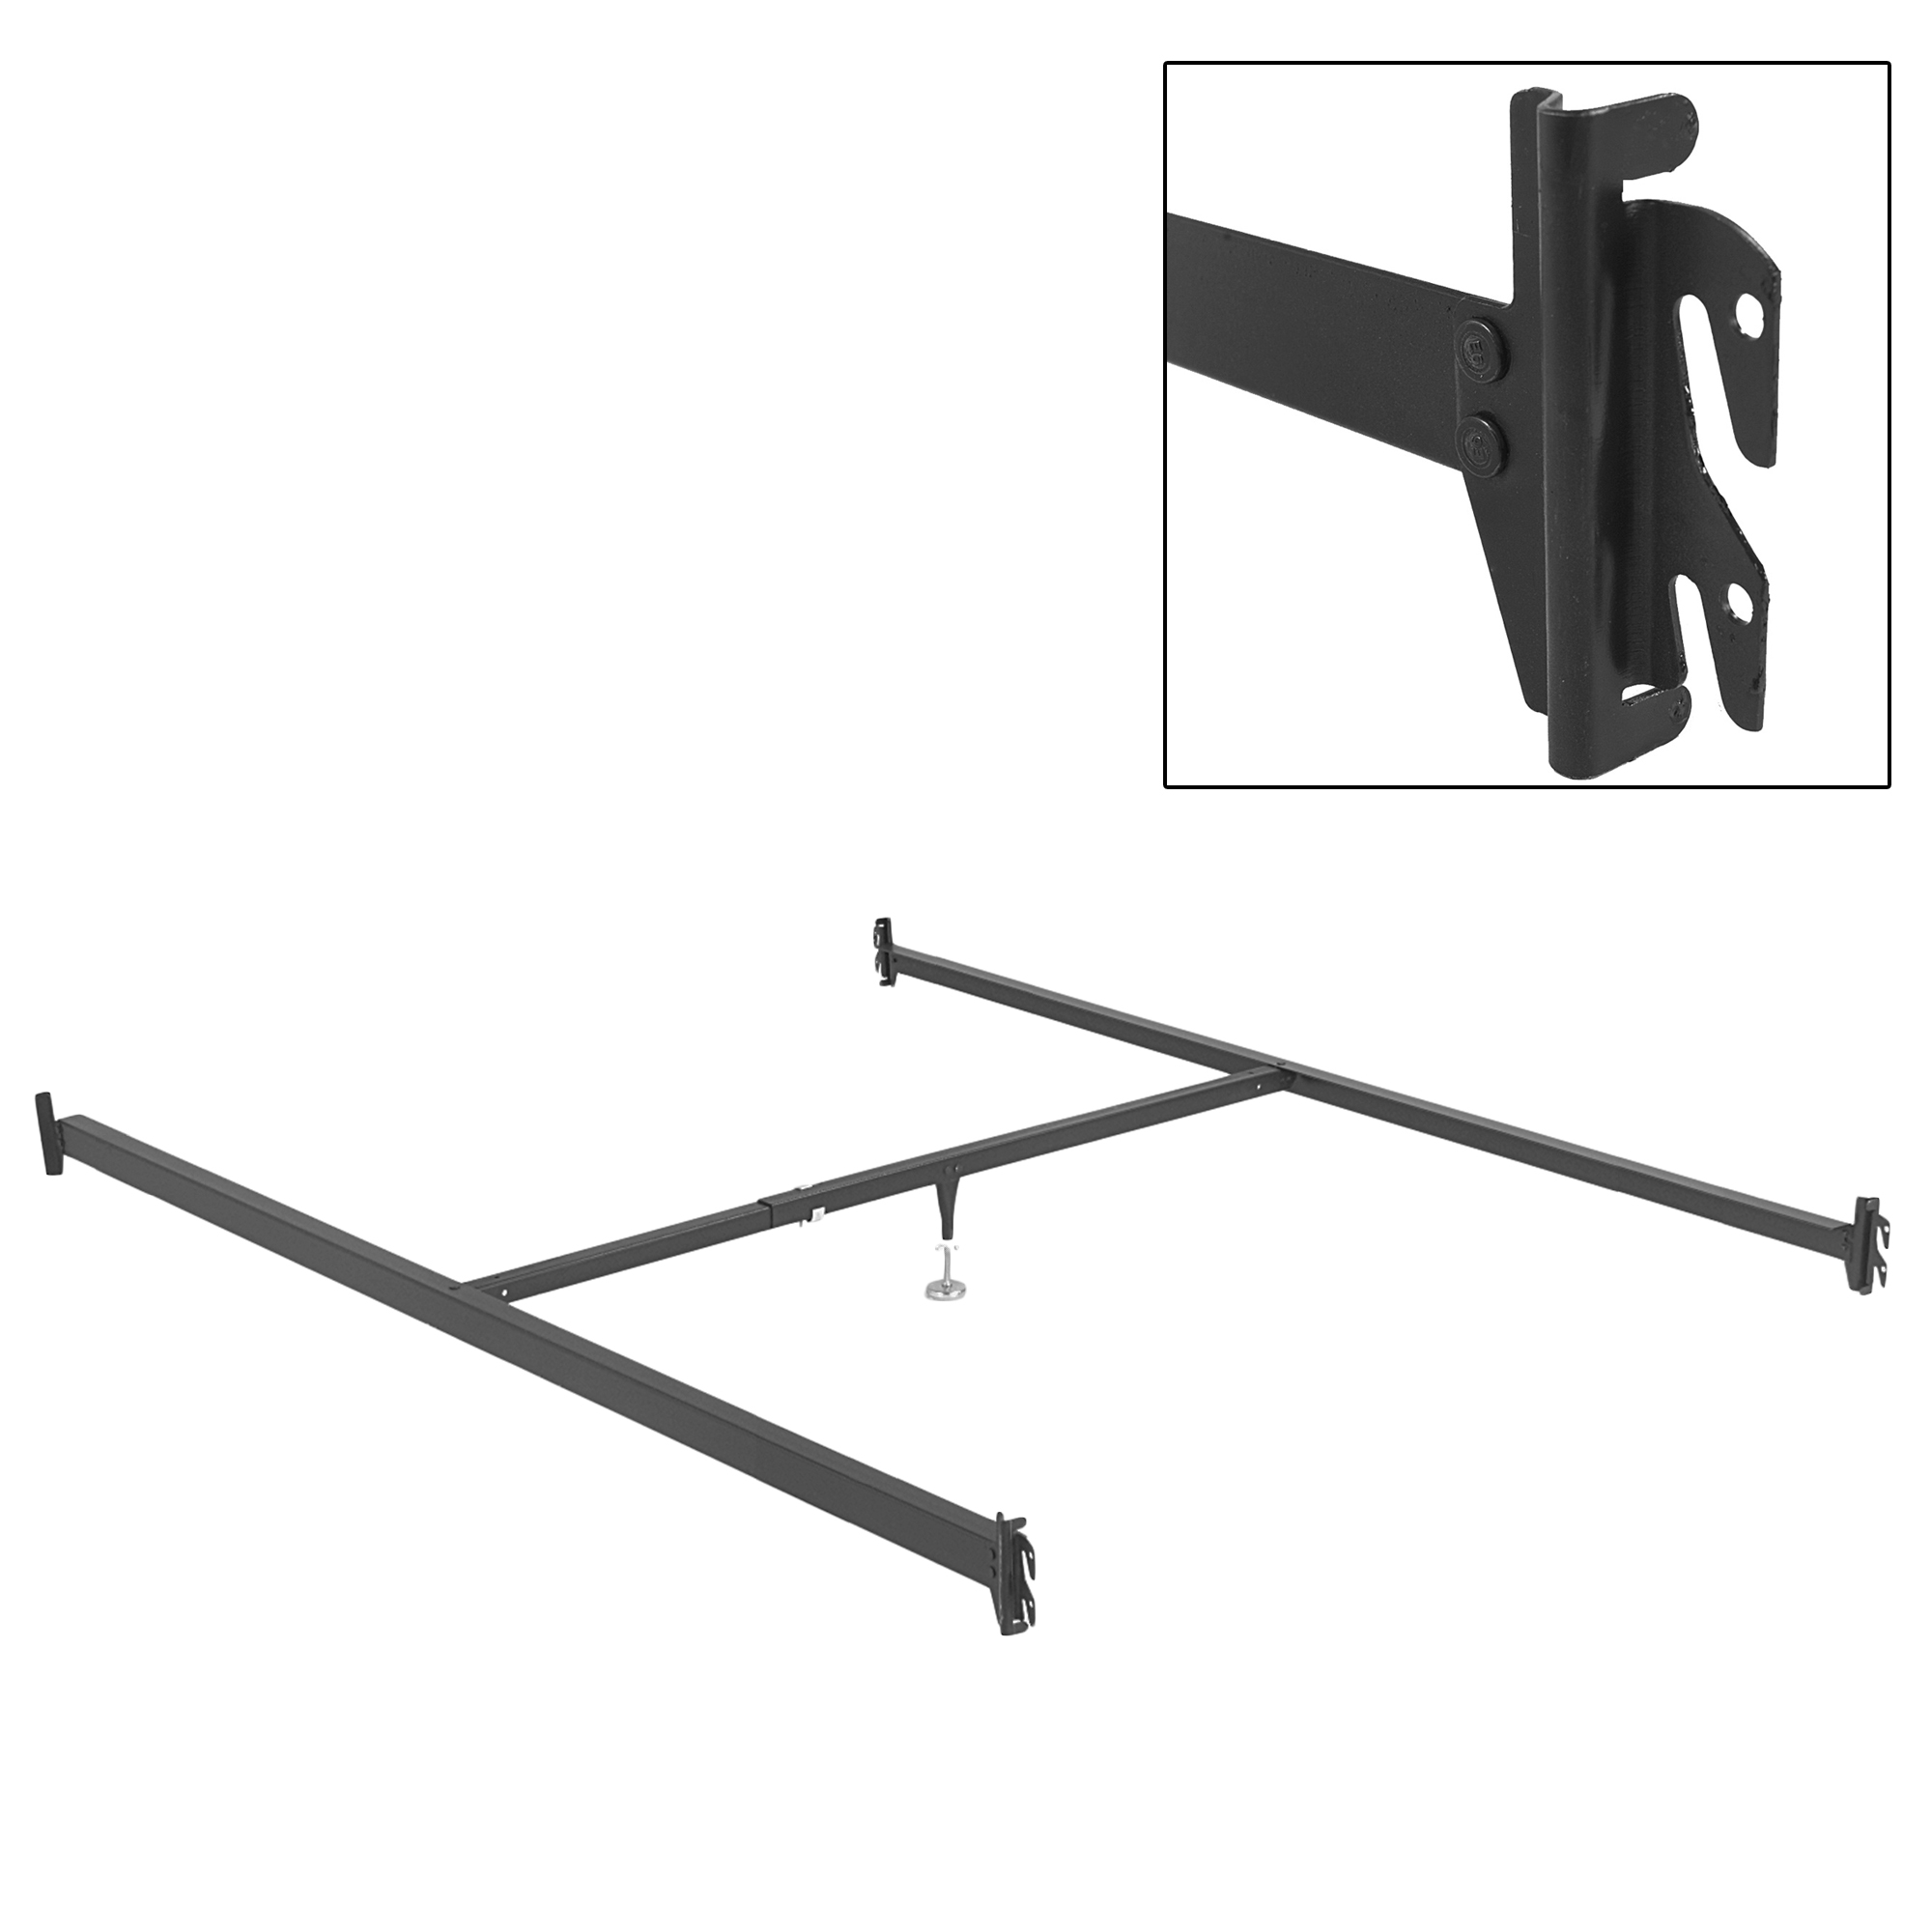 430166fashion Bed Group 81 Inch Bed Frame Side Rails 81 1h With Hook